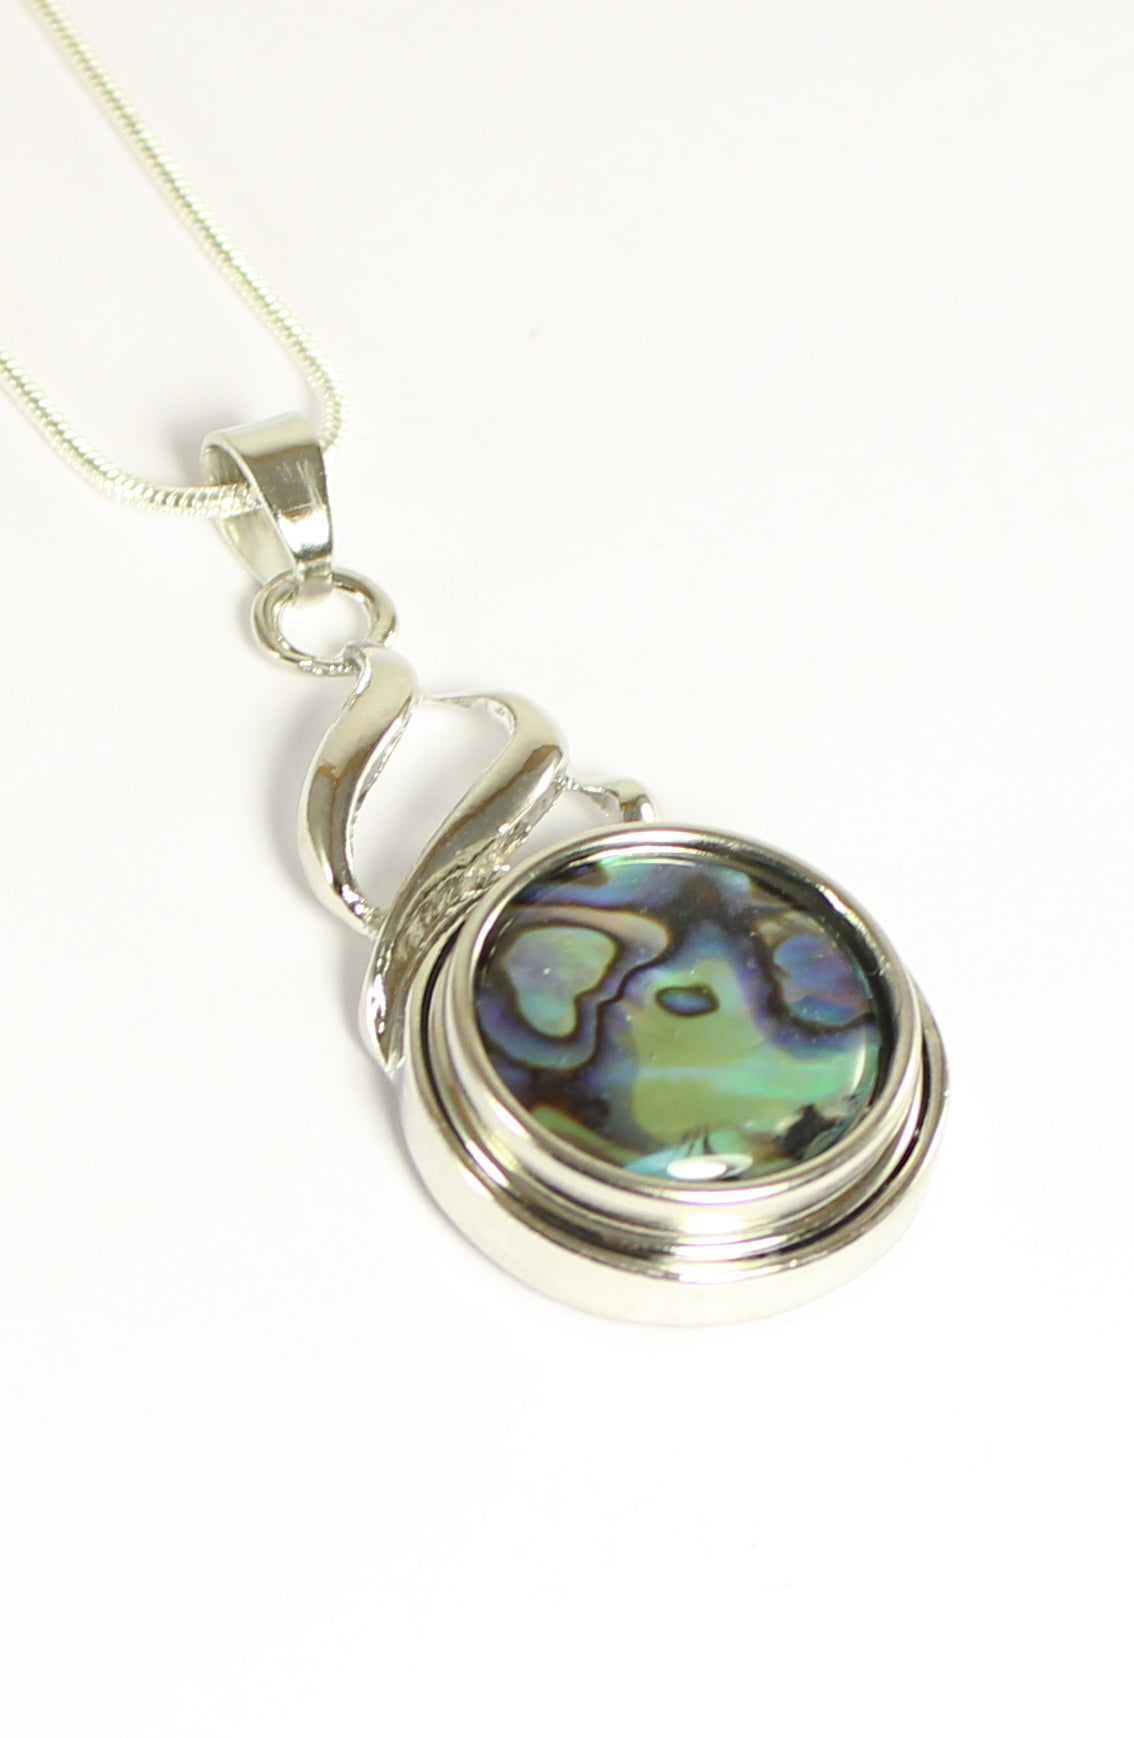 Sparkle Snap Swirl Design Pendant and Necklace Set